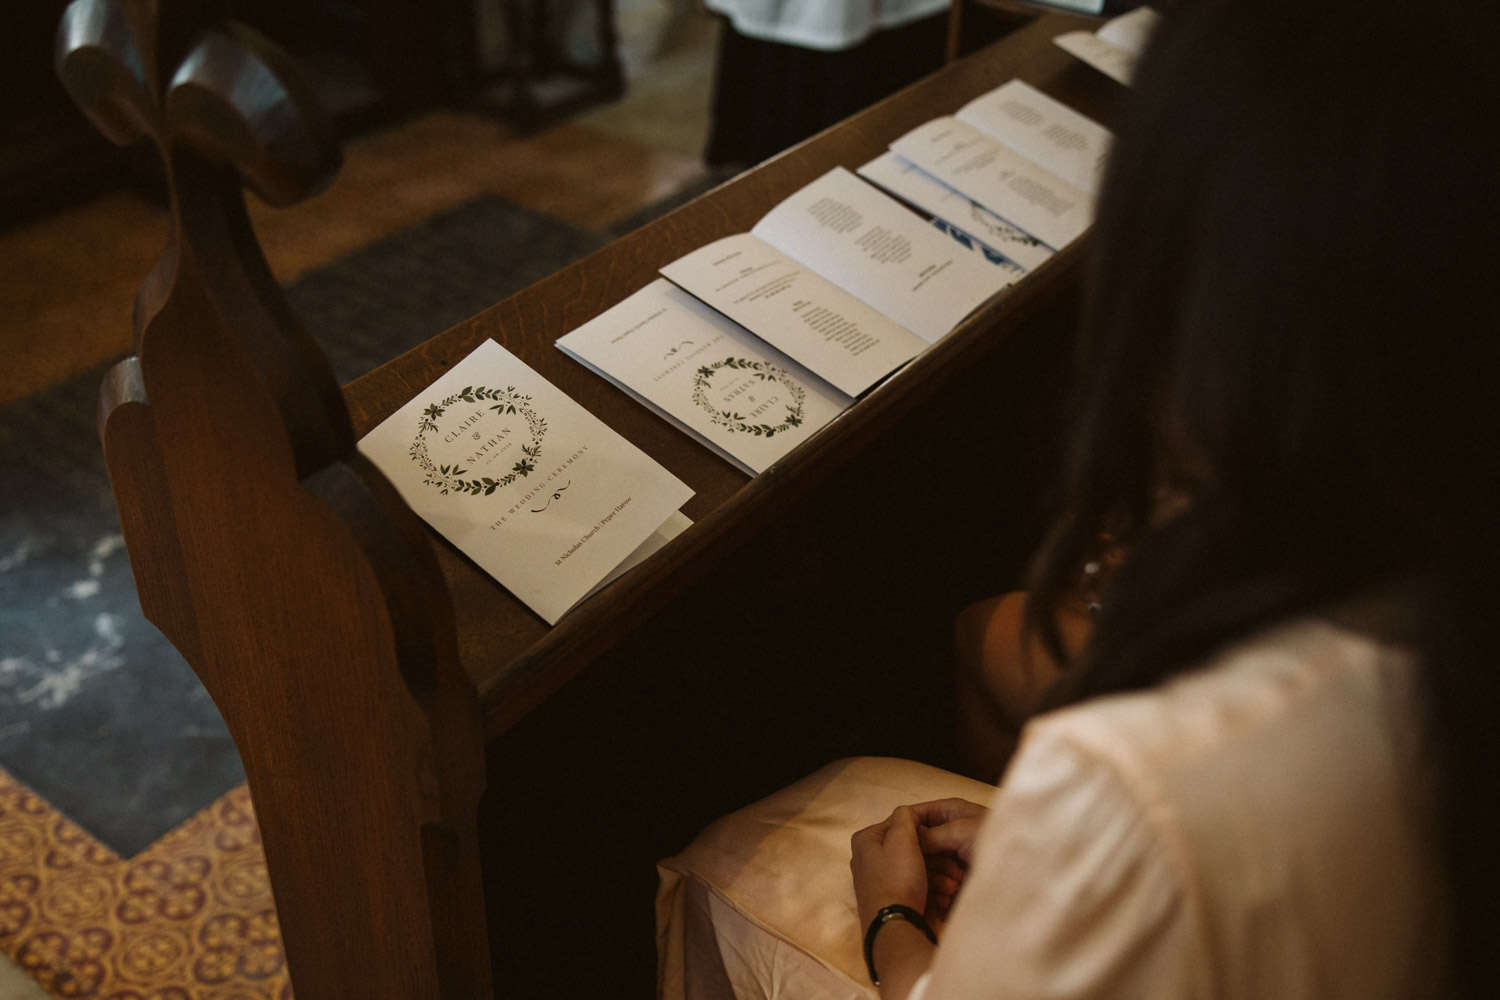 the beautifully designed order of service held by a bridesmaid